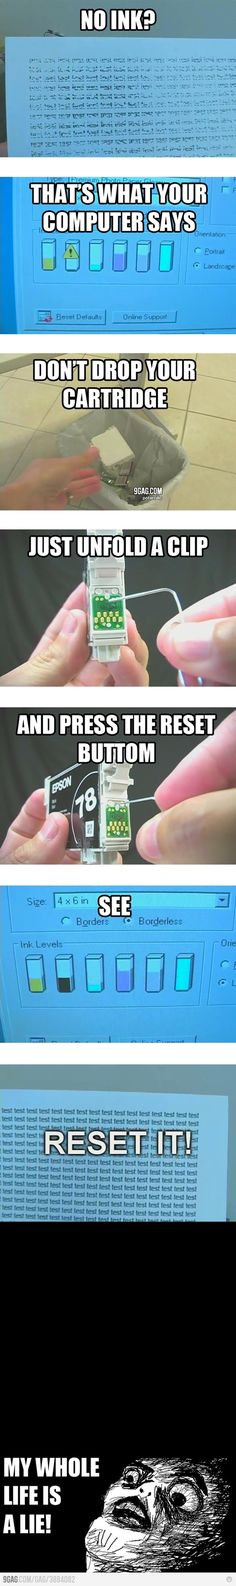 Reset ink cartridge...Total fail!  Look at the cartridge people.  There is no reset button to push!